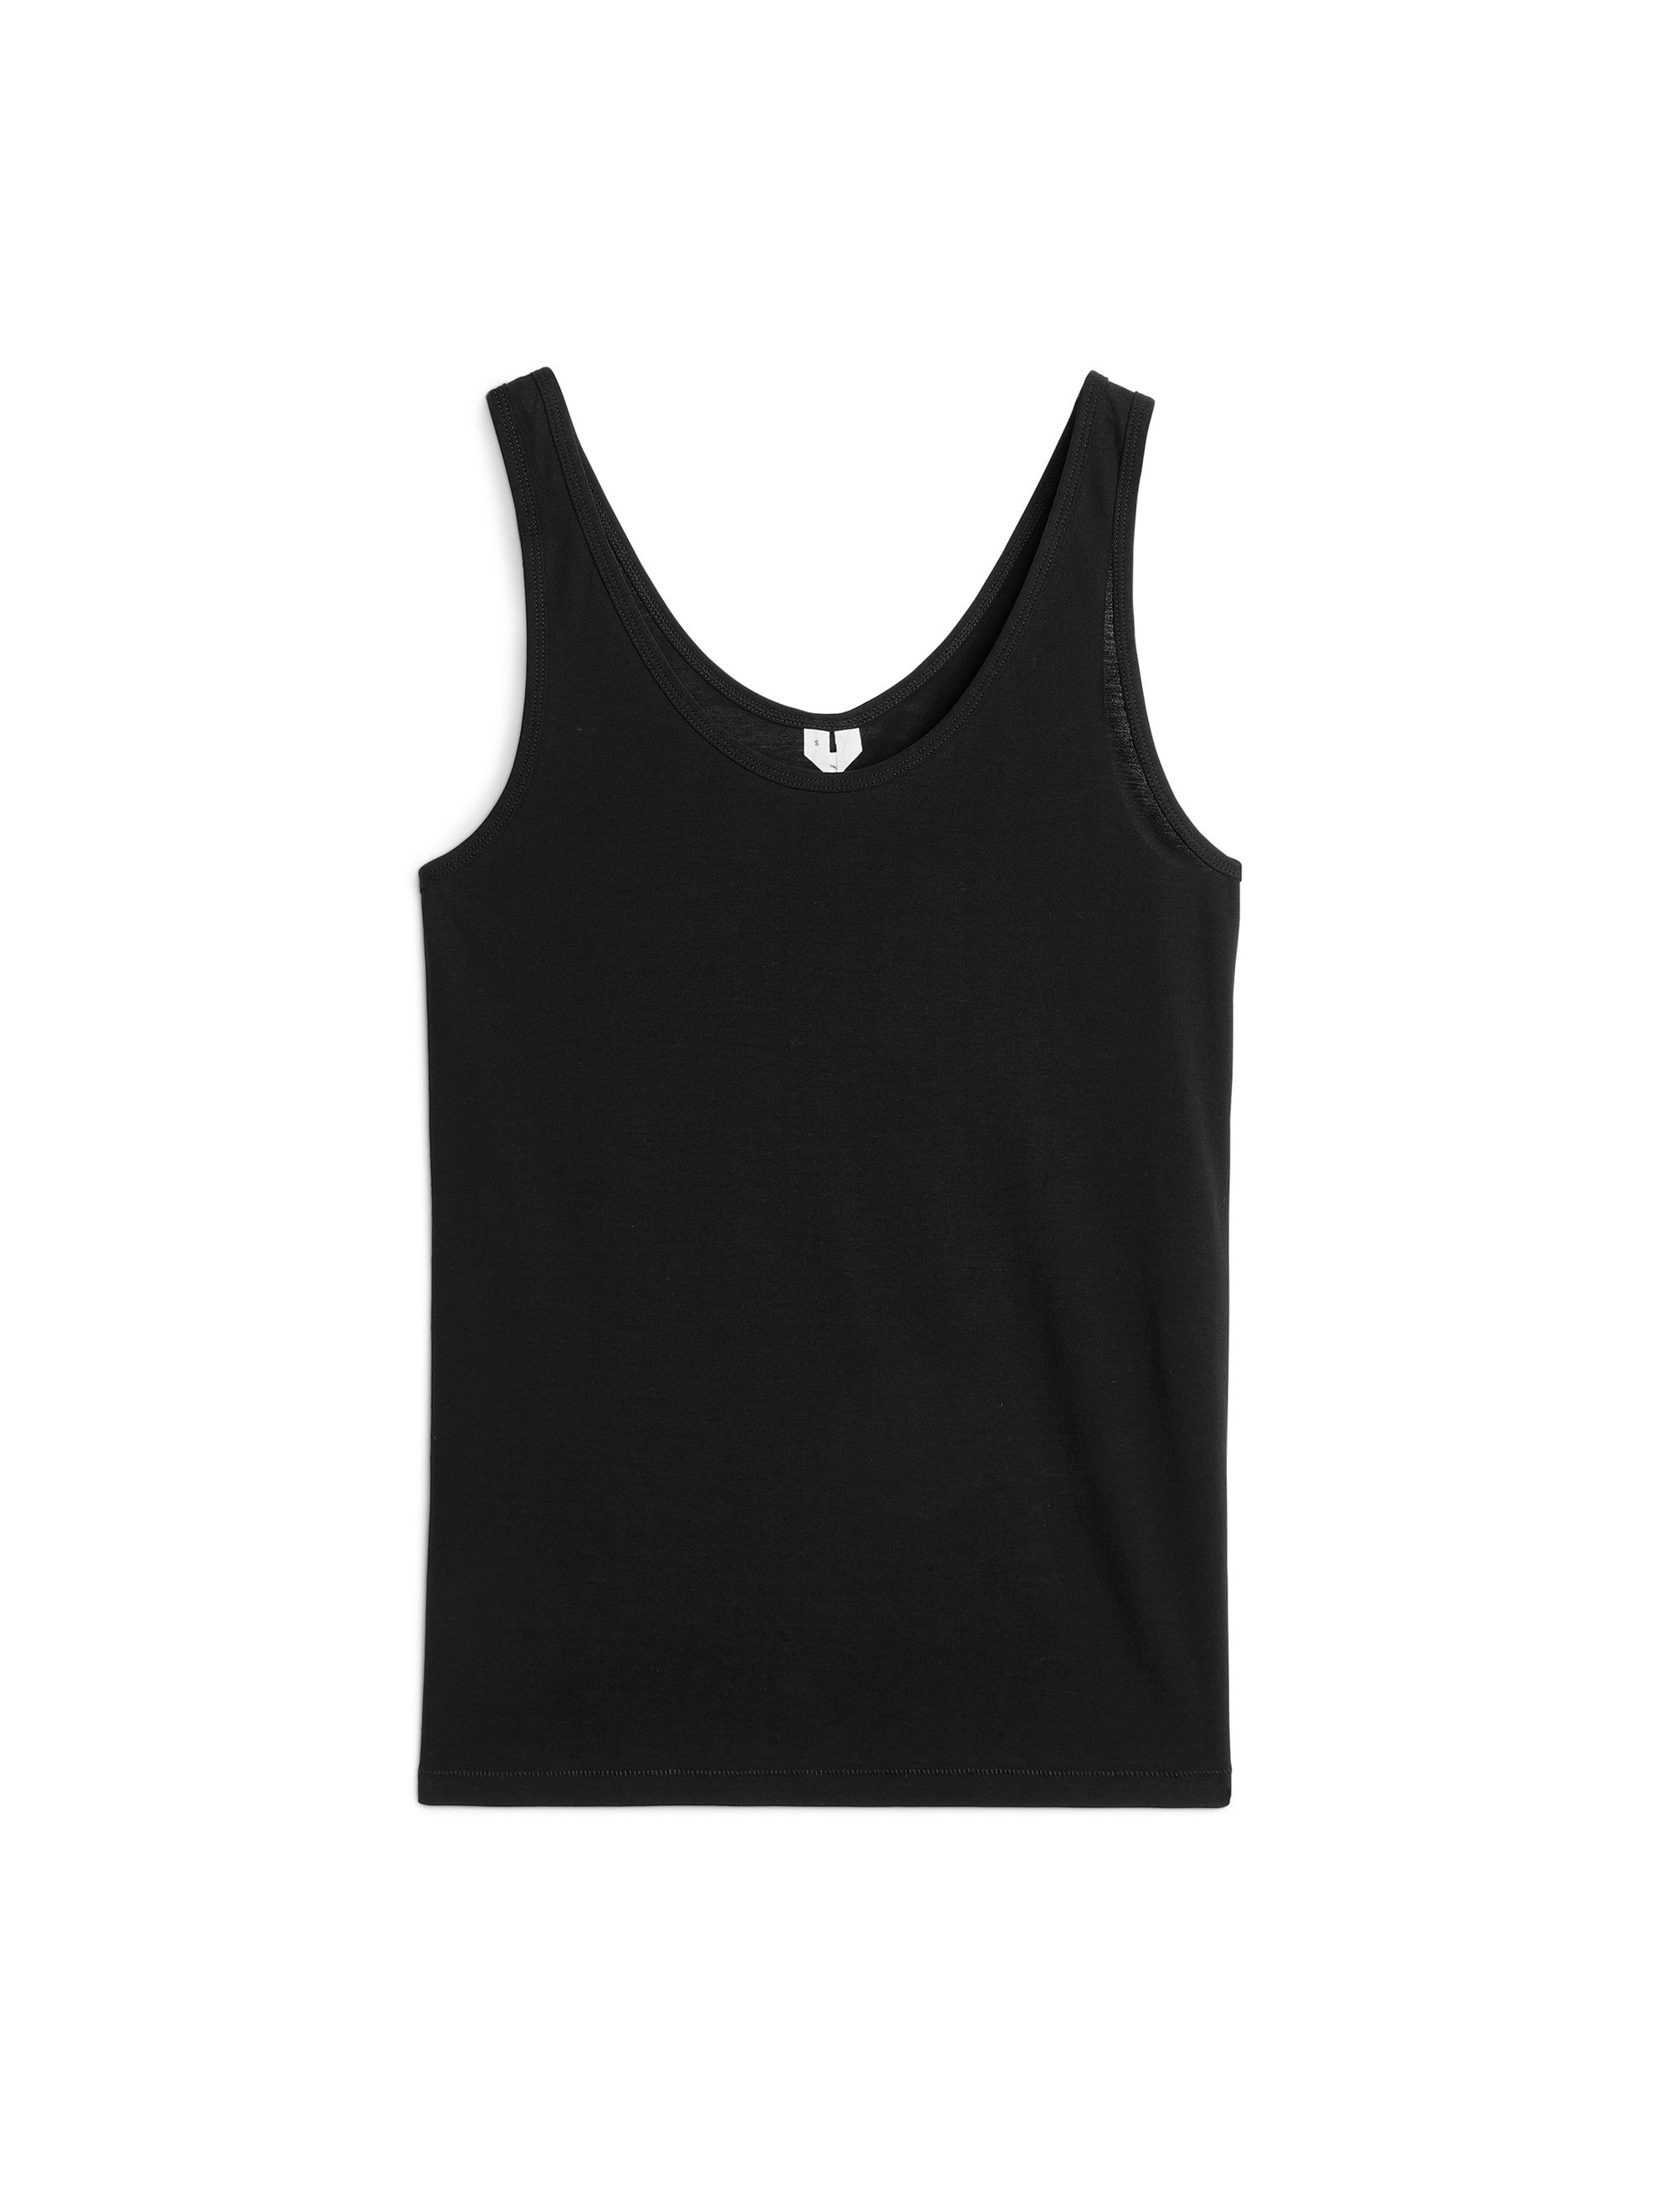 Fabric Swatch image of Arket pima cotton tank top in black